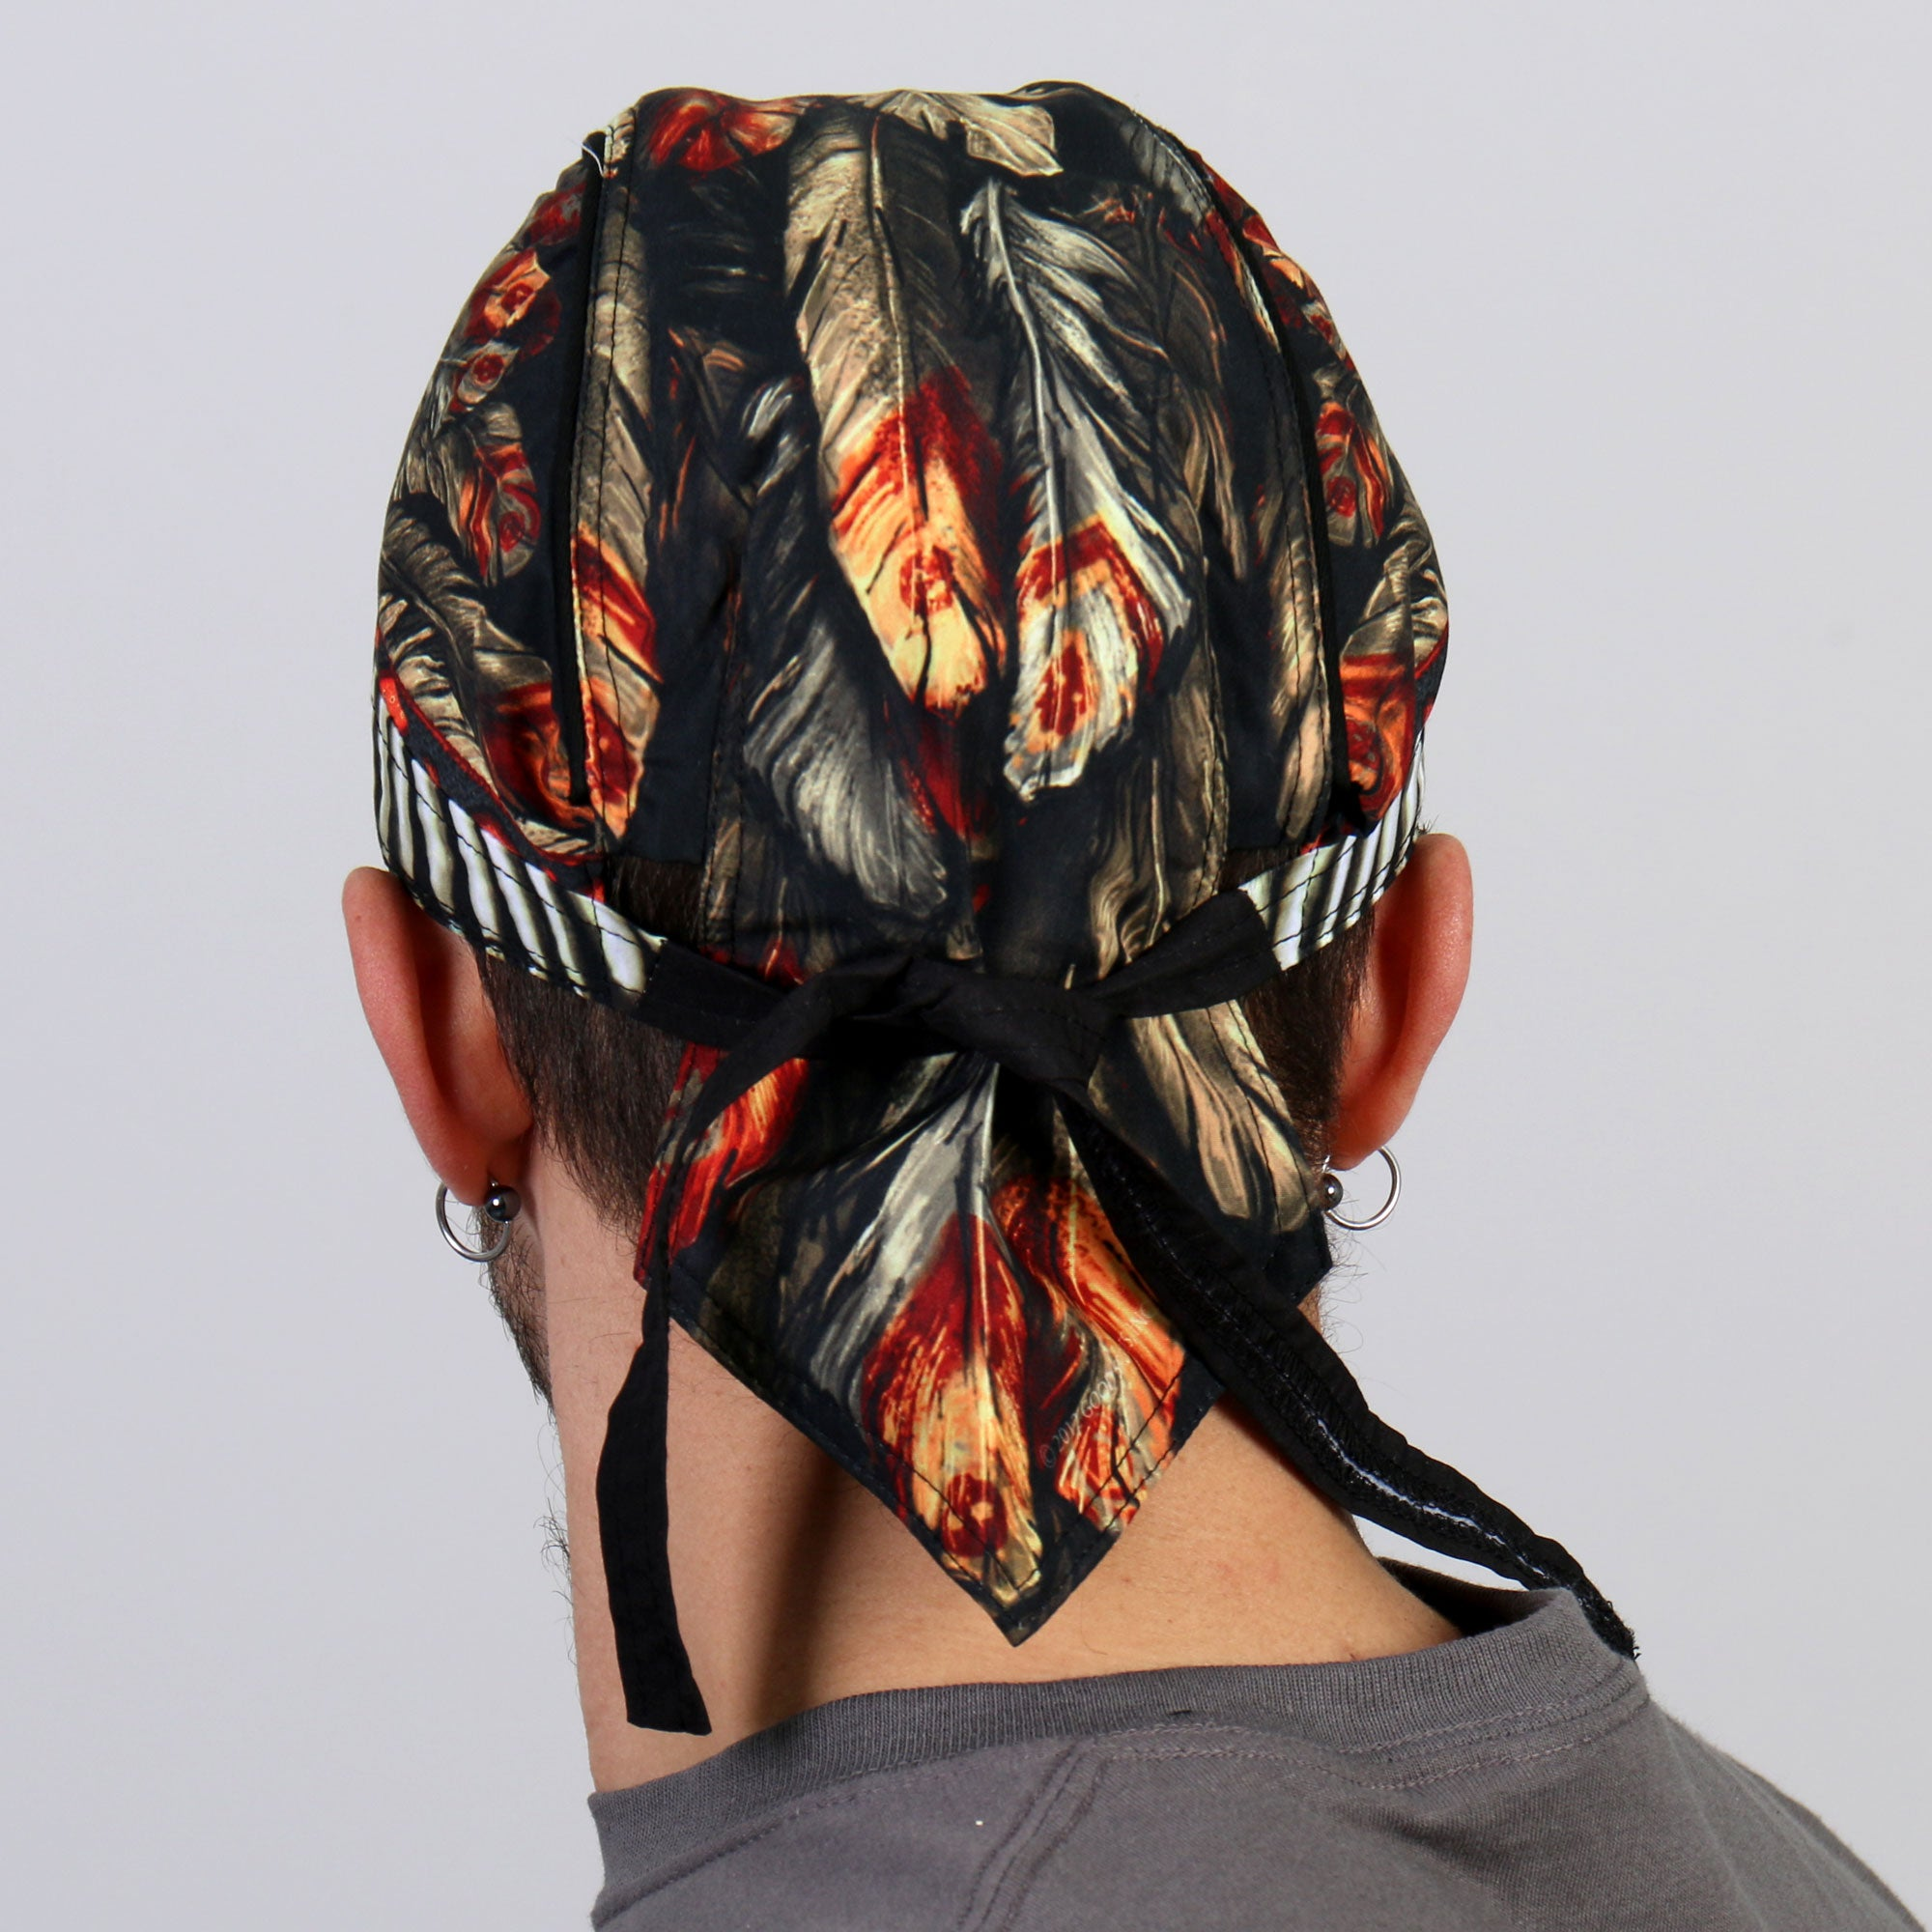 Hot Leathers Native American Headdress Premium Headwrap